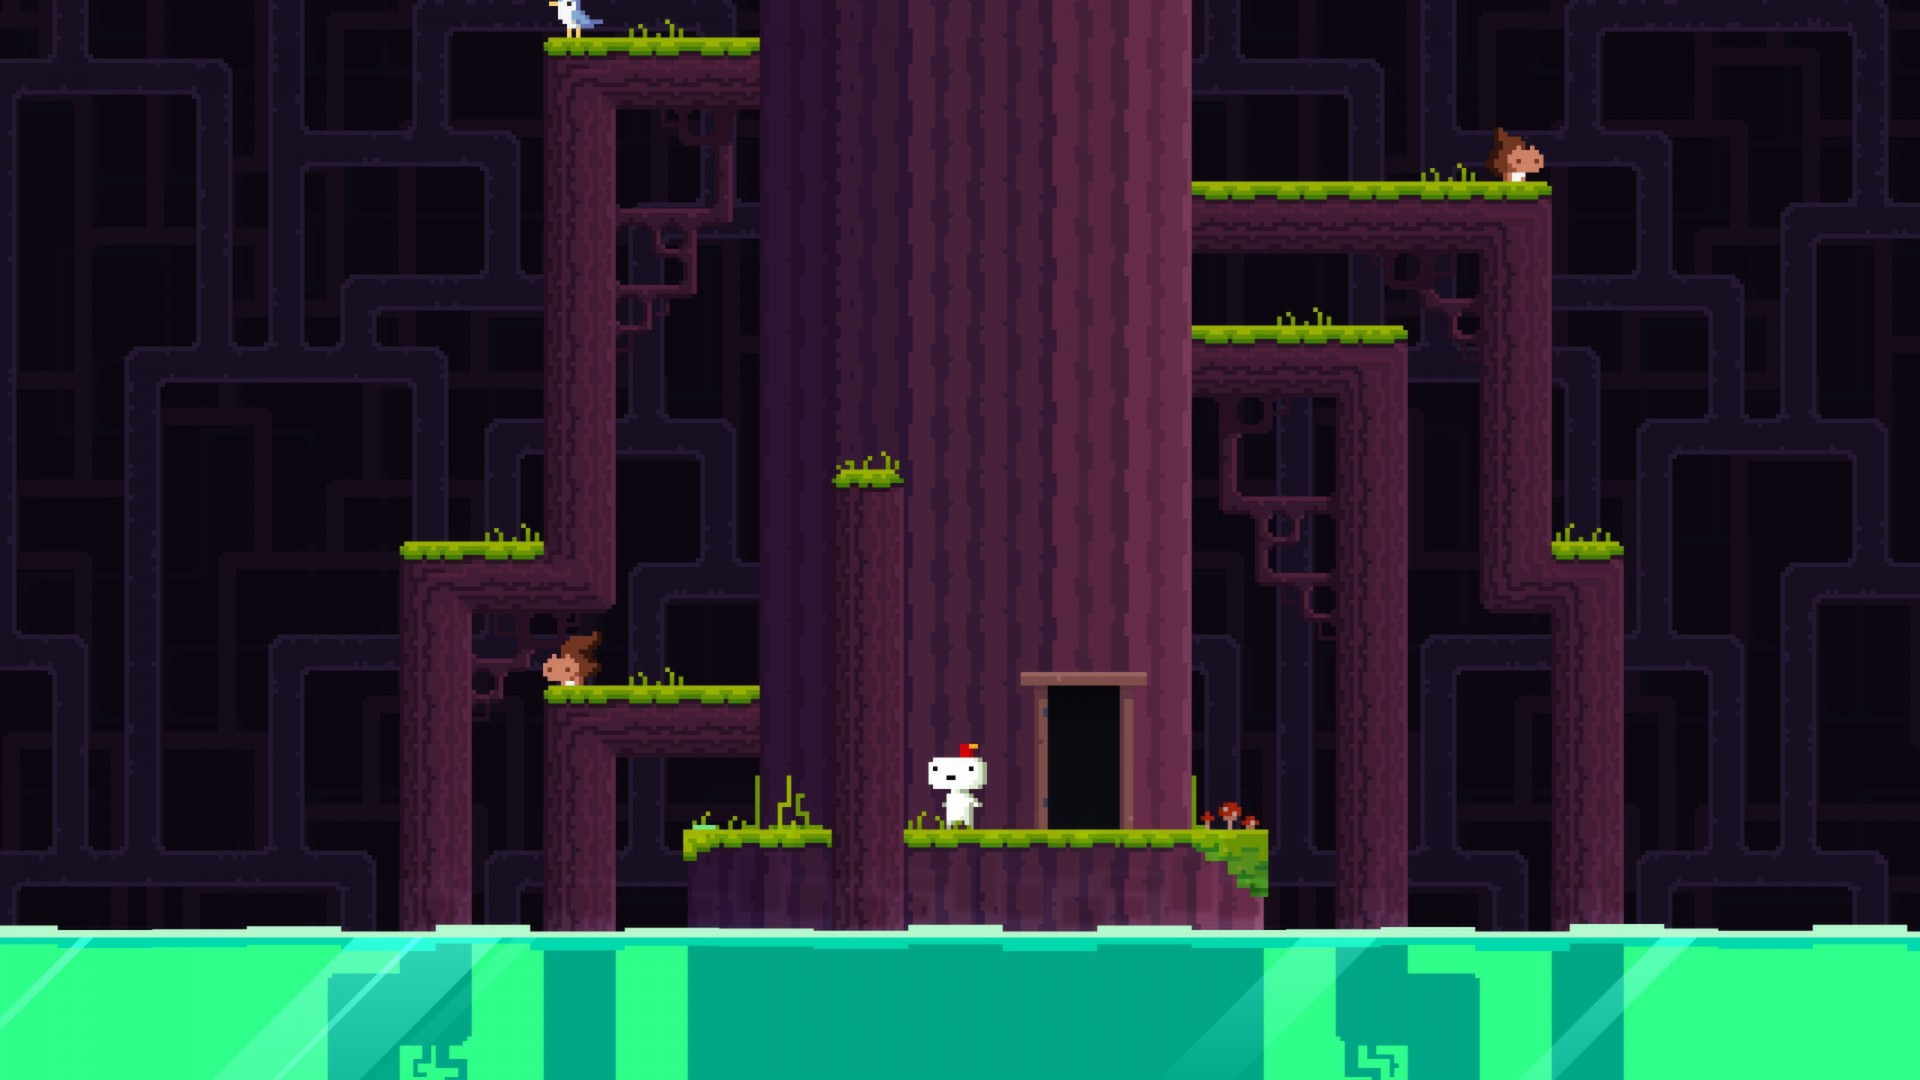 PlayStation Plus free games for August include Fez and Crysis 3 (update)